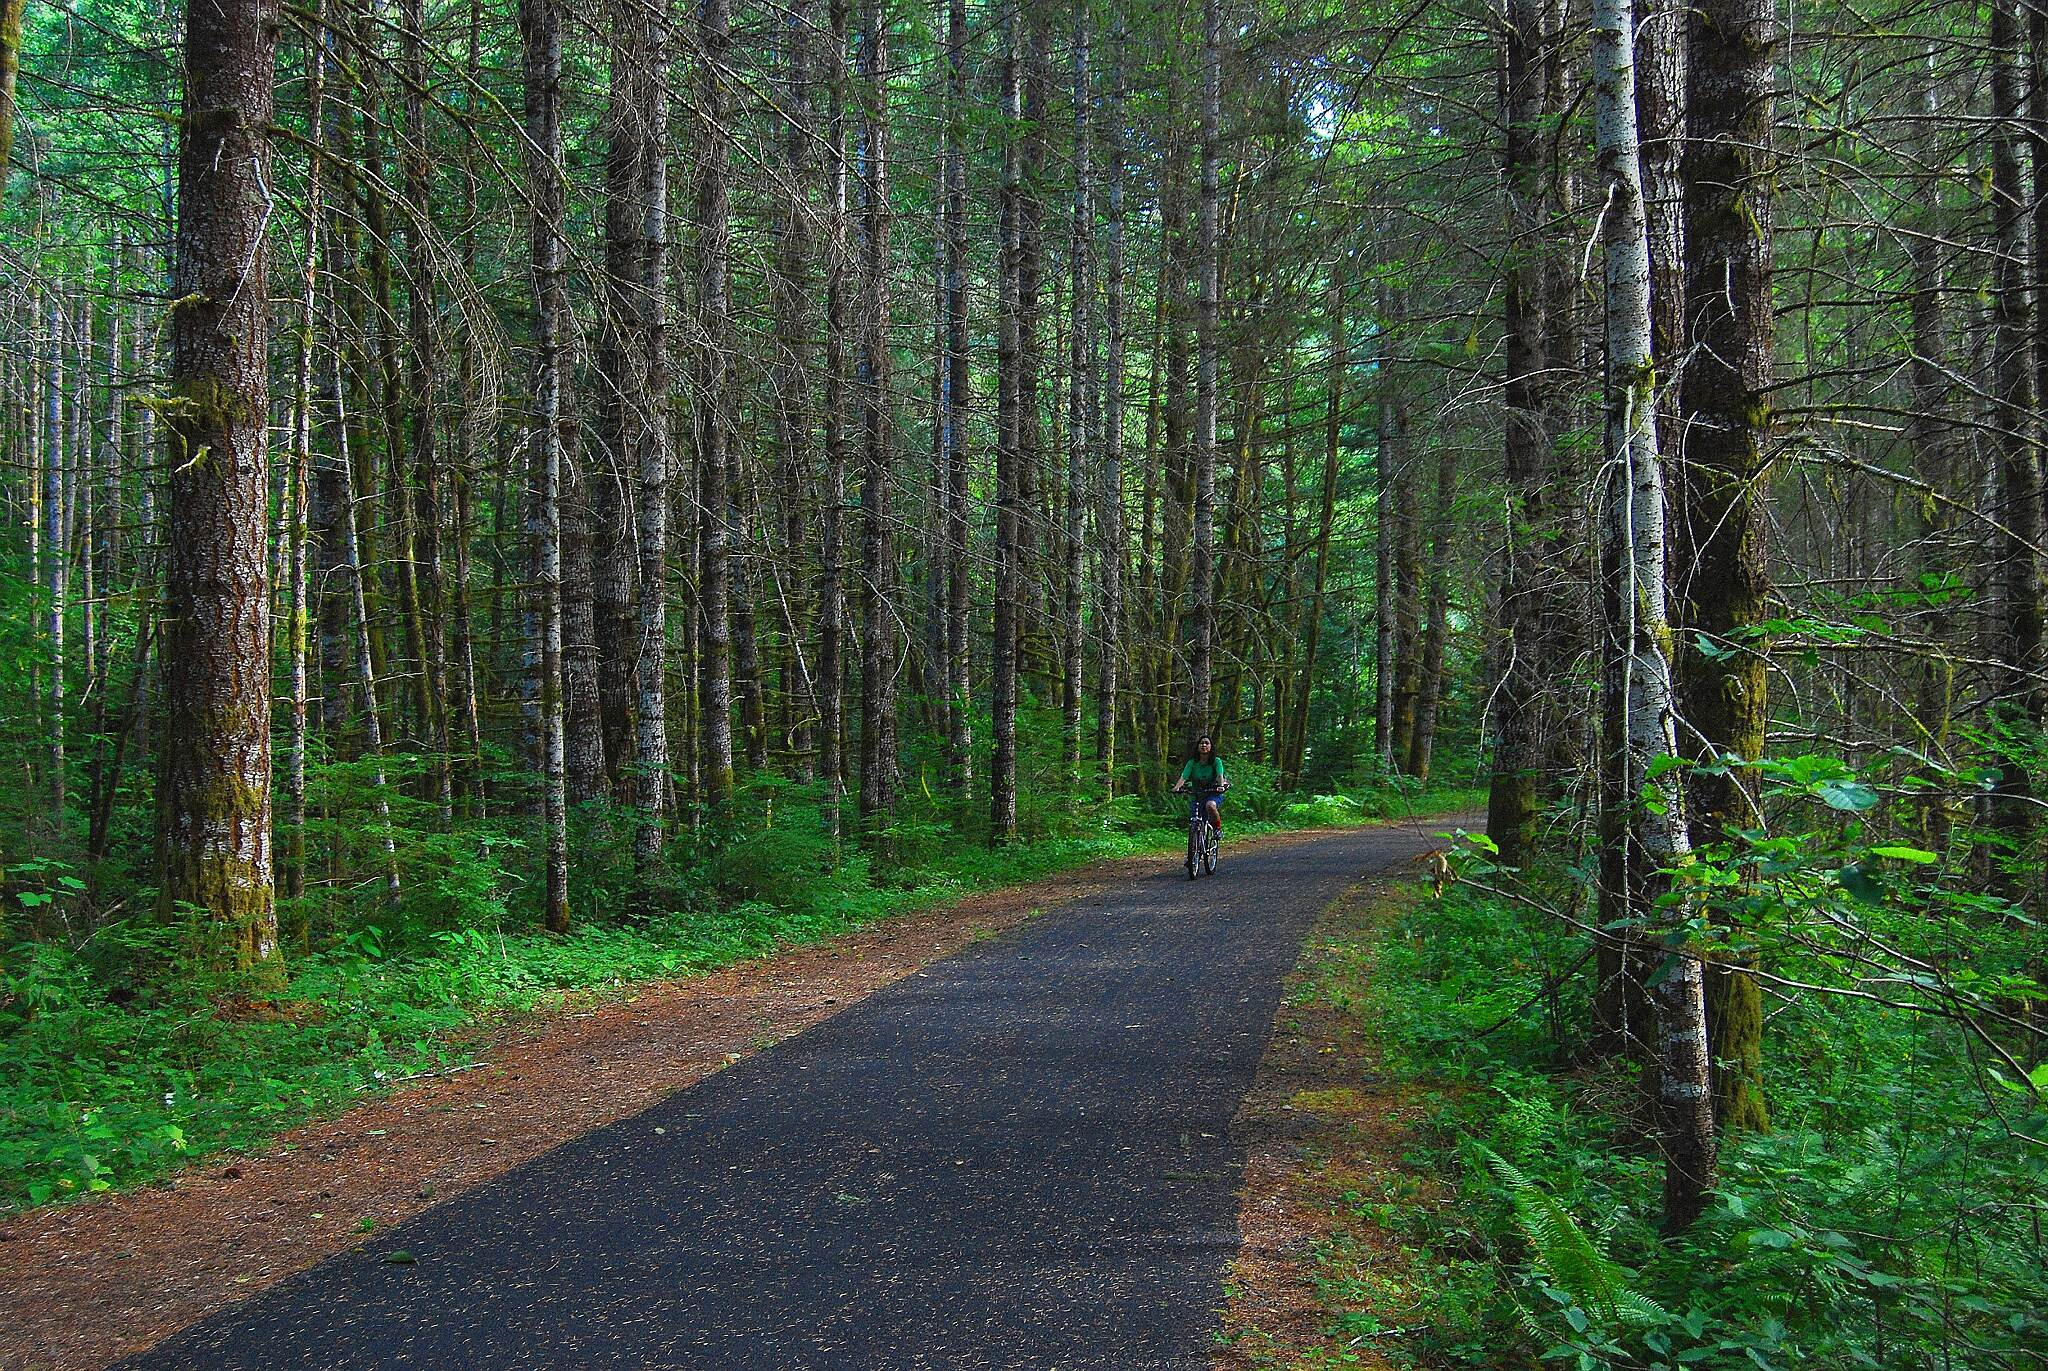 Banks-Vernonia State Trail Banks Vernonia path riding thru the tall trees on the Banks Vernonia bike path.